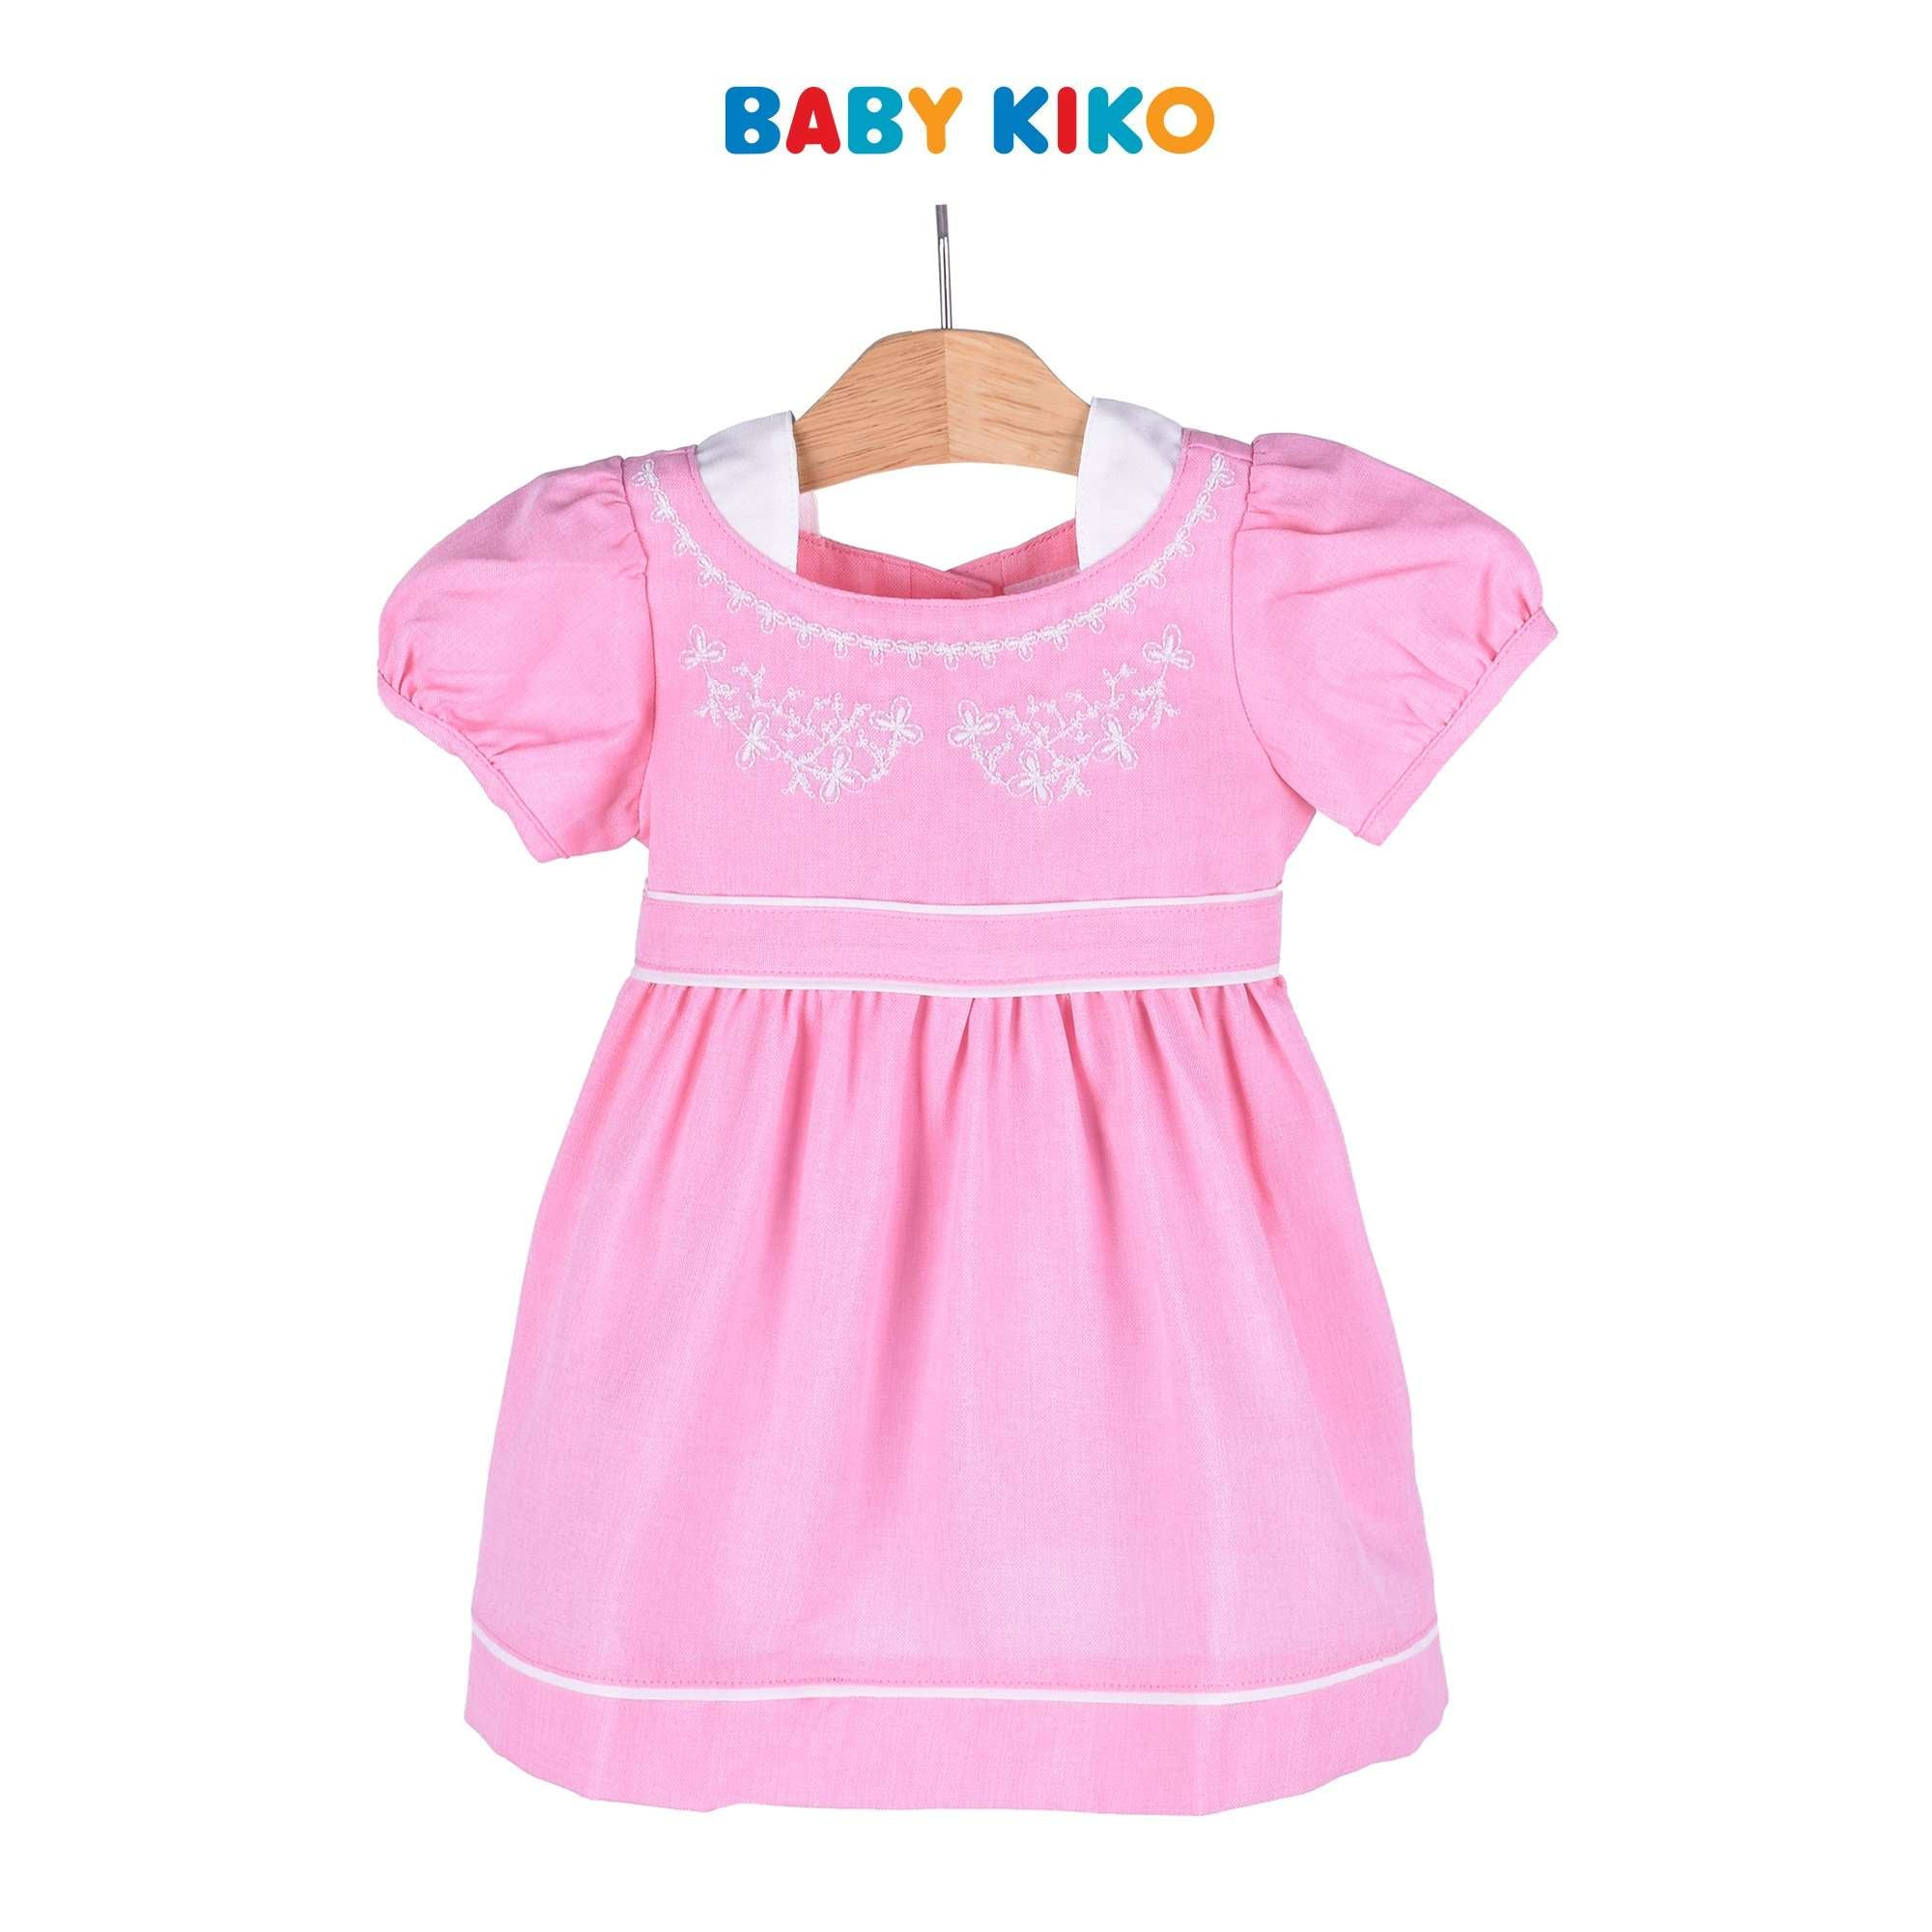 Baby KIKO Baby Girl Short Sleeve Dress Woven - Pink 310105-312 : Buy Baby KIKO online at CMG.MY